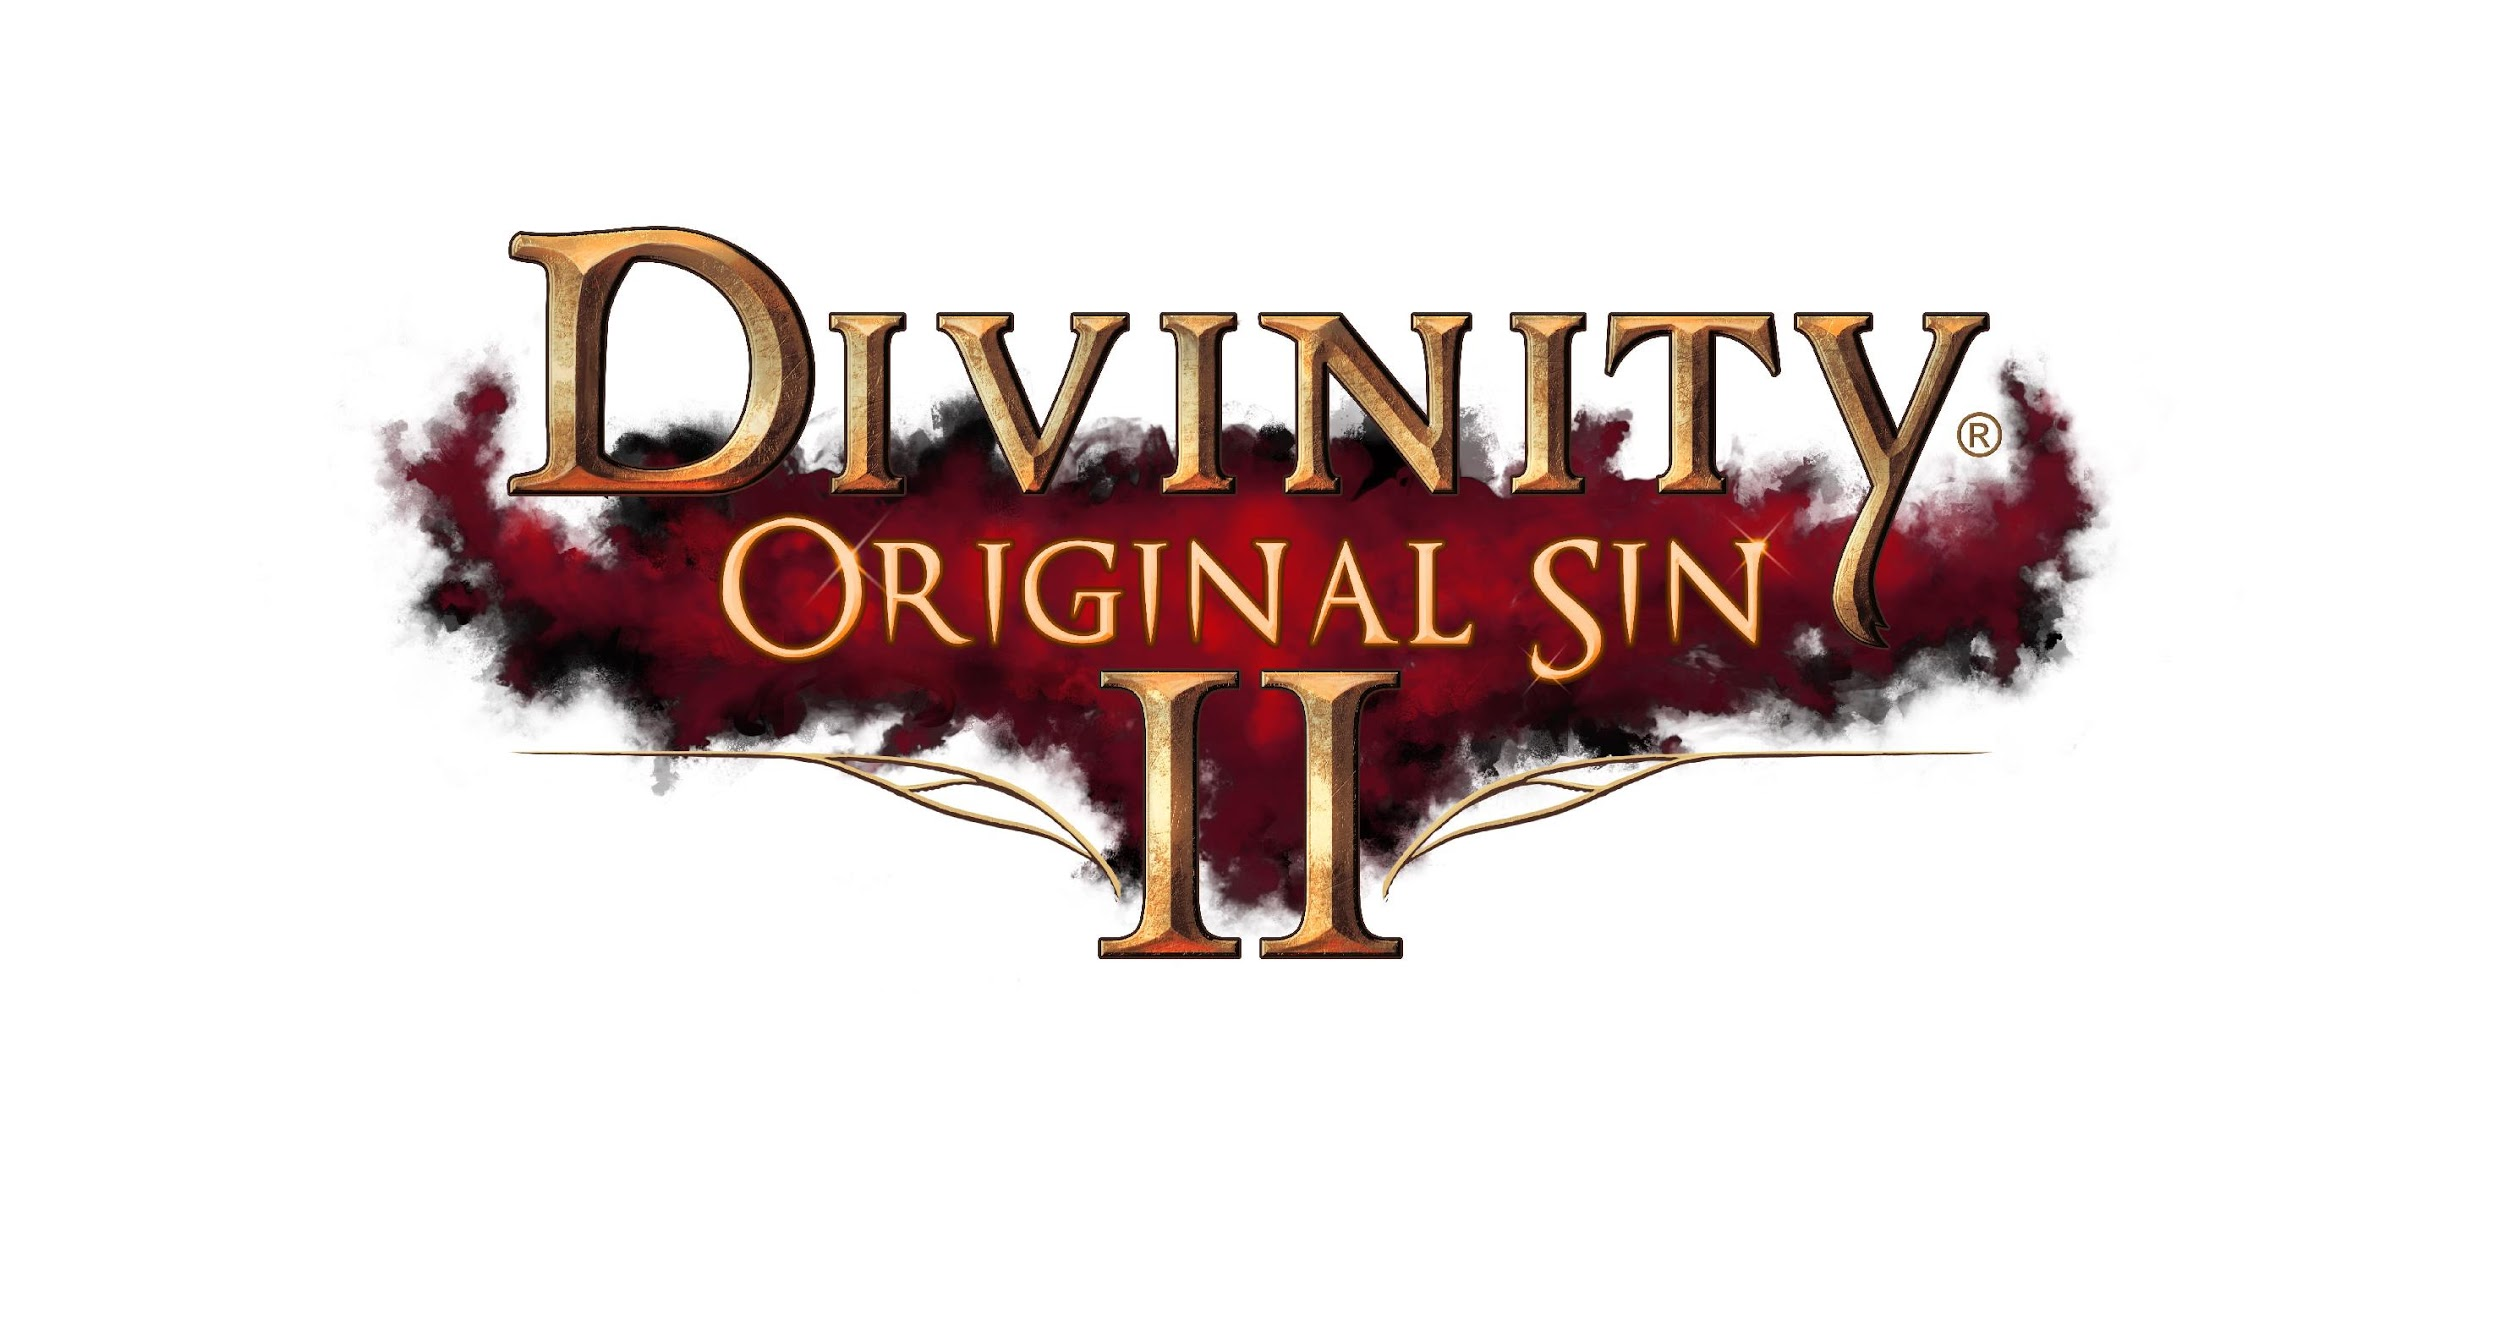 Divinity: Original Sin is easily one of my favourite games of all time. I  can count all the RPGs on one hand that have personally taken me somewhere  else, PlusPng.com  - Divinity Original Sin PNG